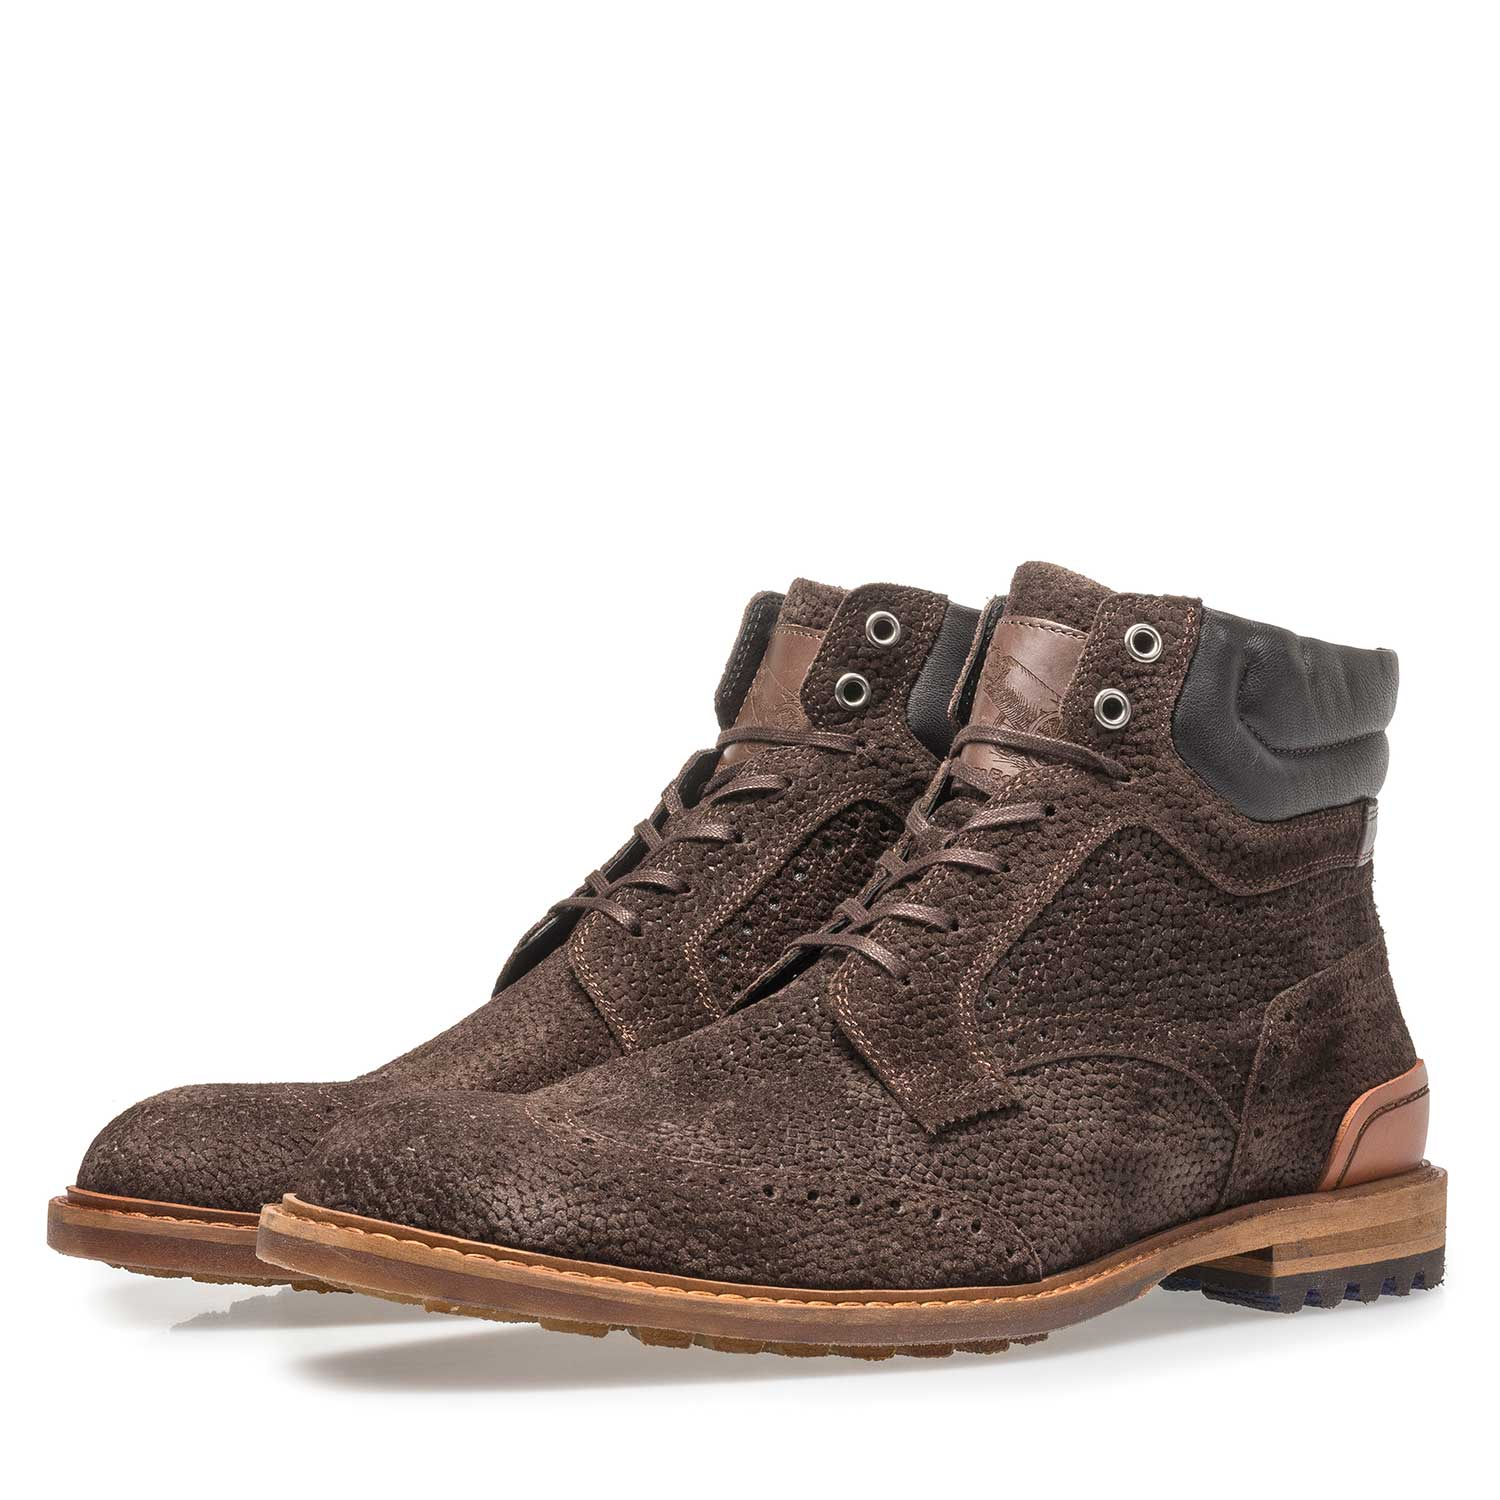 10816/07 - Dark brown suede lace boot with print